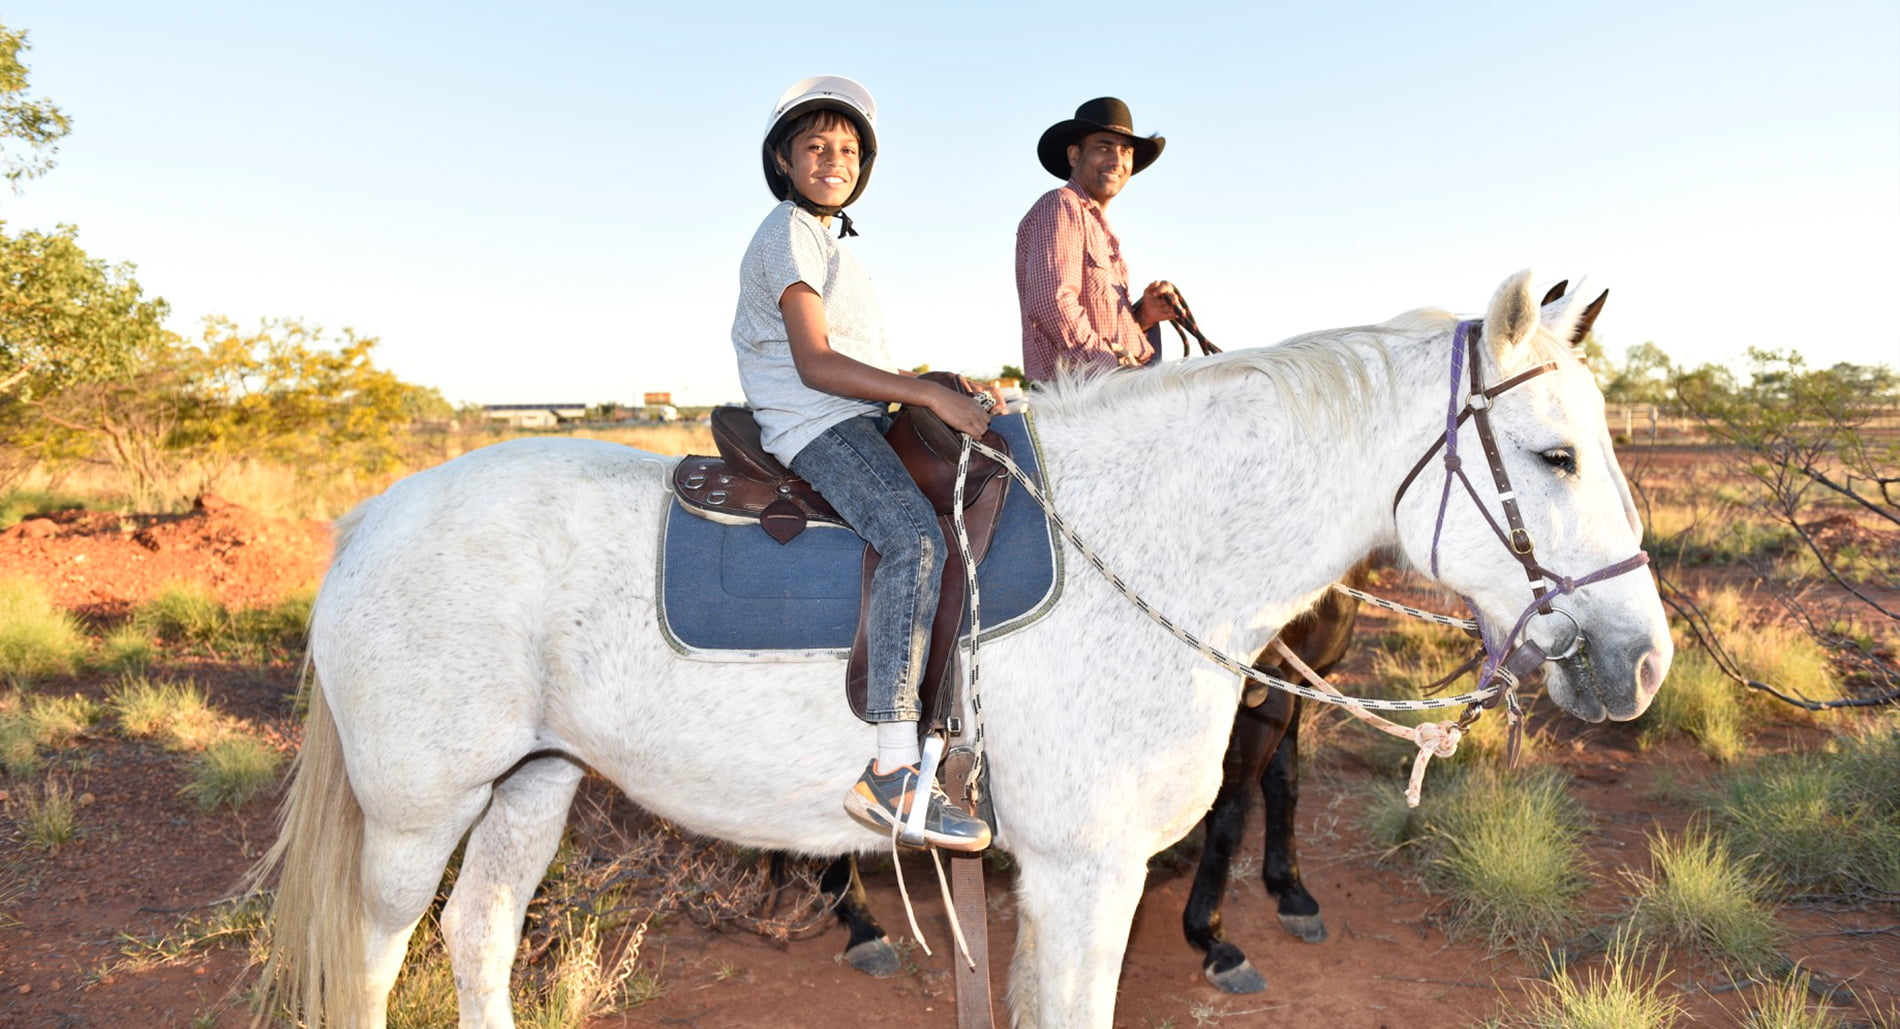 A boy rides a horse with co-founder David Sammon as part of Mona's Cultural Horsemanship program on Flora Downs Station, near Mount Isa, June 2016. © Wayne Quilliam